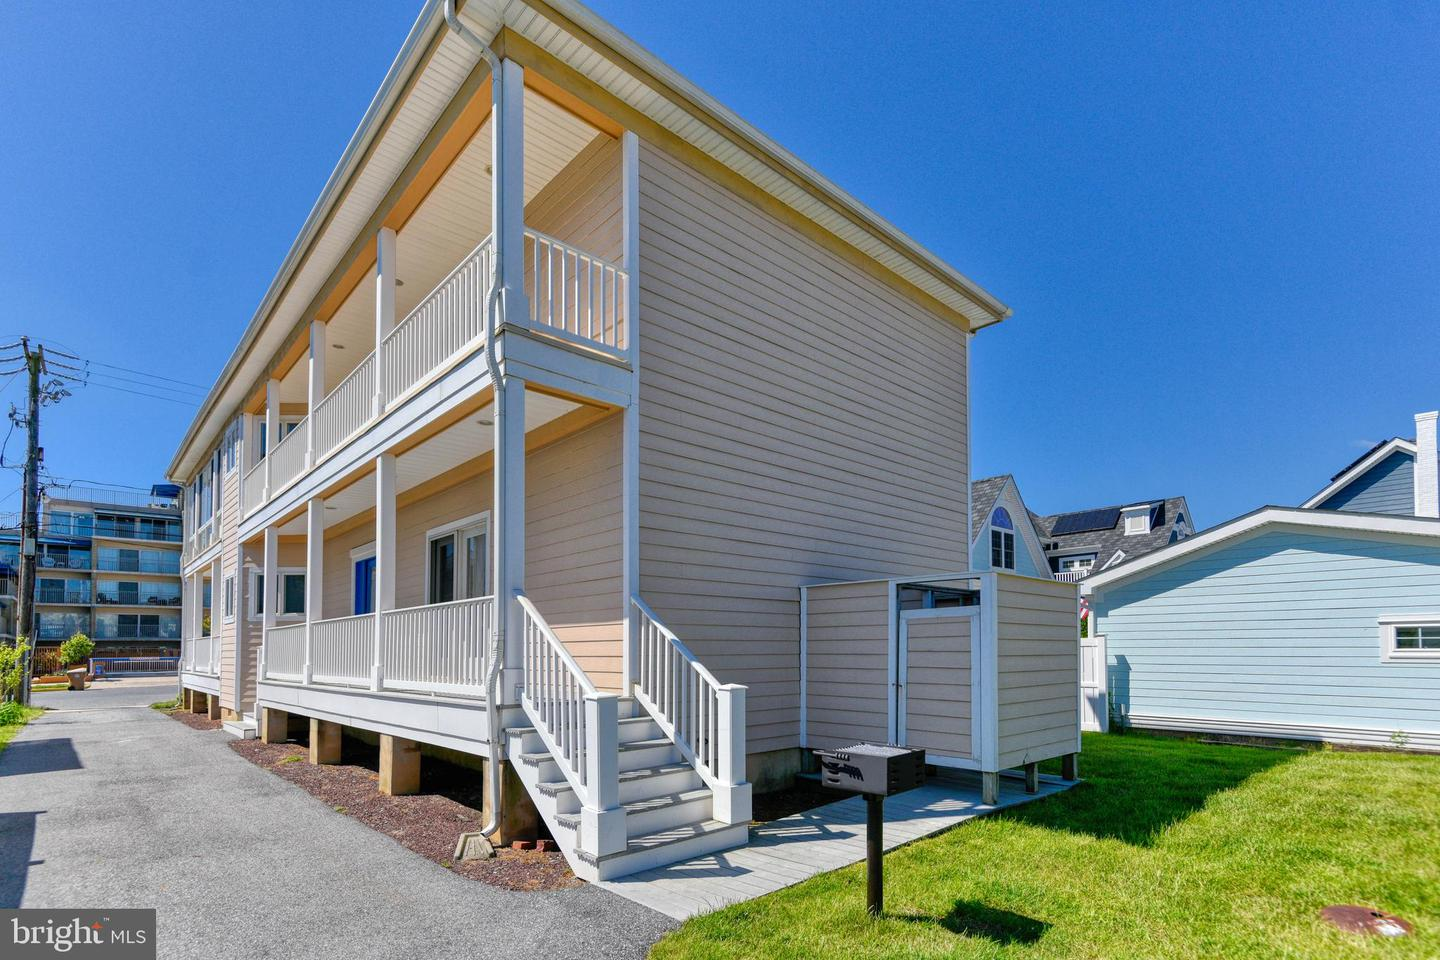 DESU140752-301729566342-2019-05-20-15-11-27 7 Olive Ave | Rehoboth Beach, DE Real Estate For Sale | MLS# Desu140752  - 1st Choice Properties